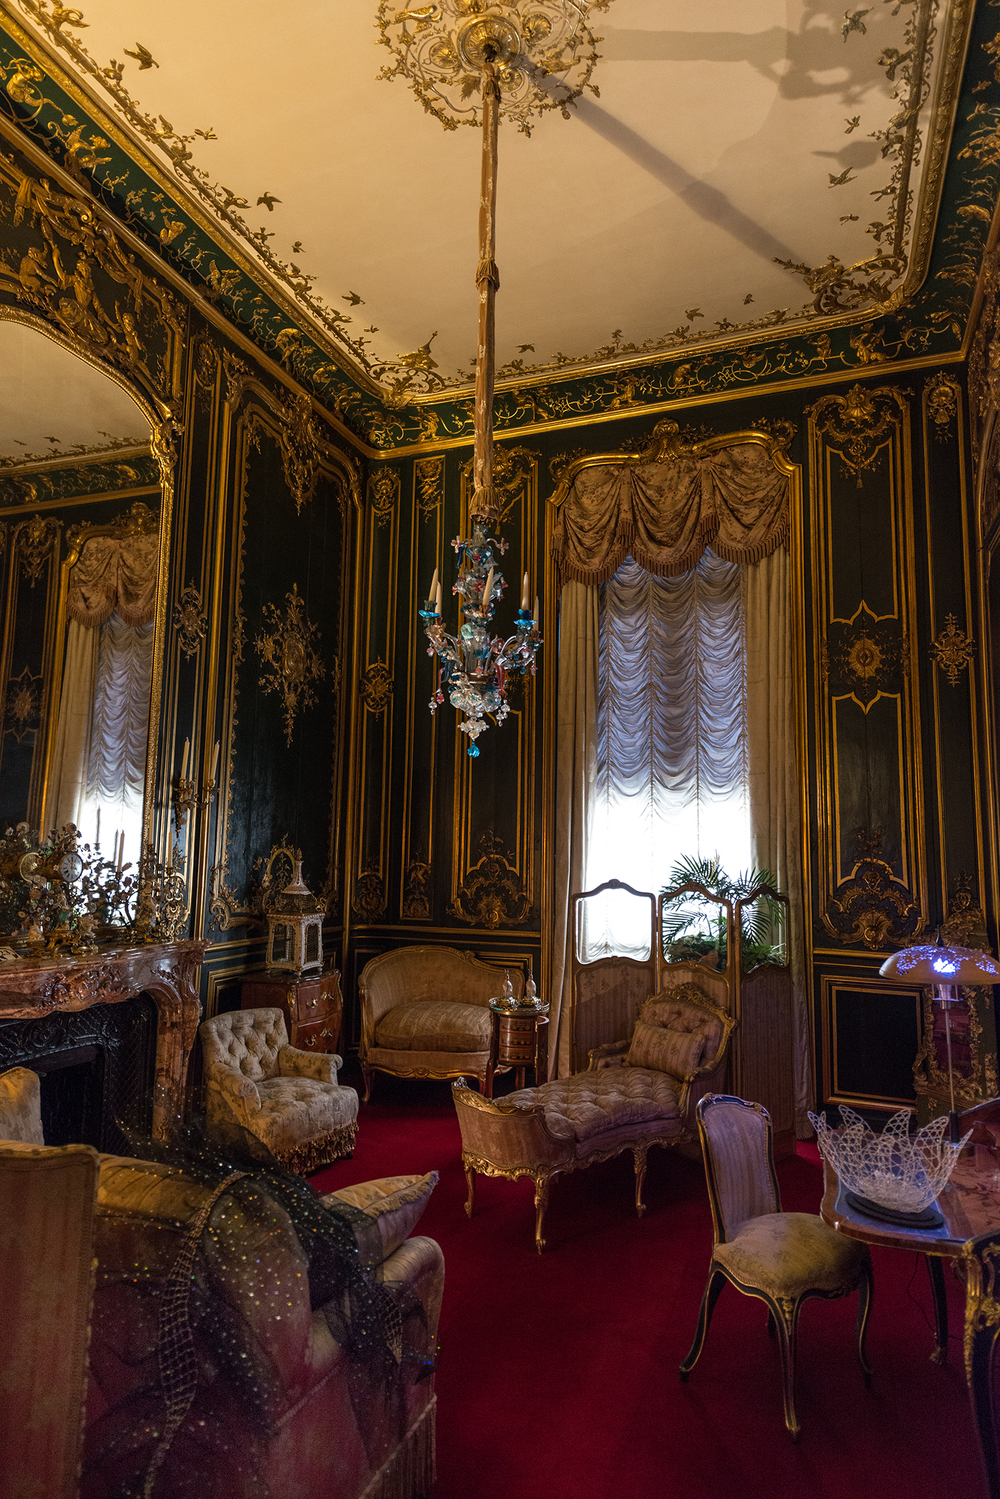 One of many opulently decorated rooms inside the estate. The property was recently handed over to the National Trust, which now organizes tours of the home.